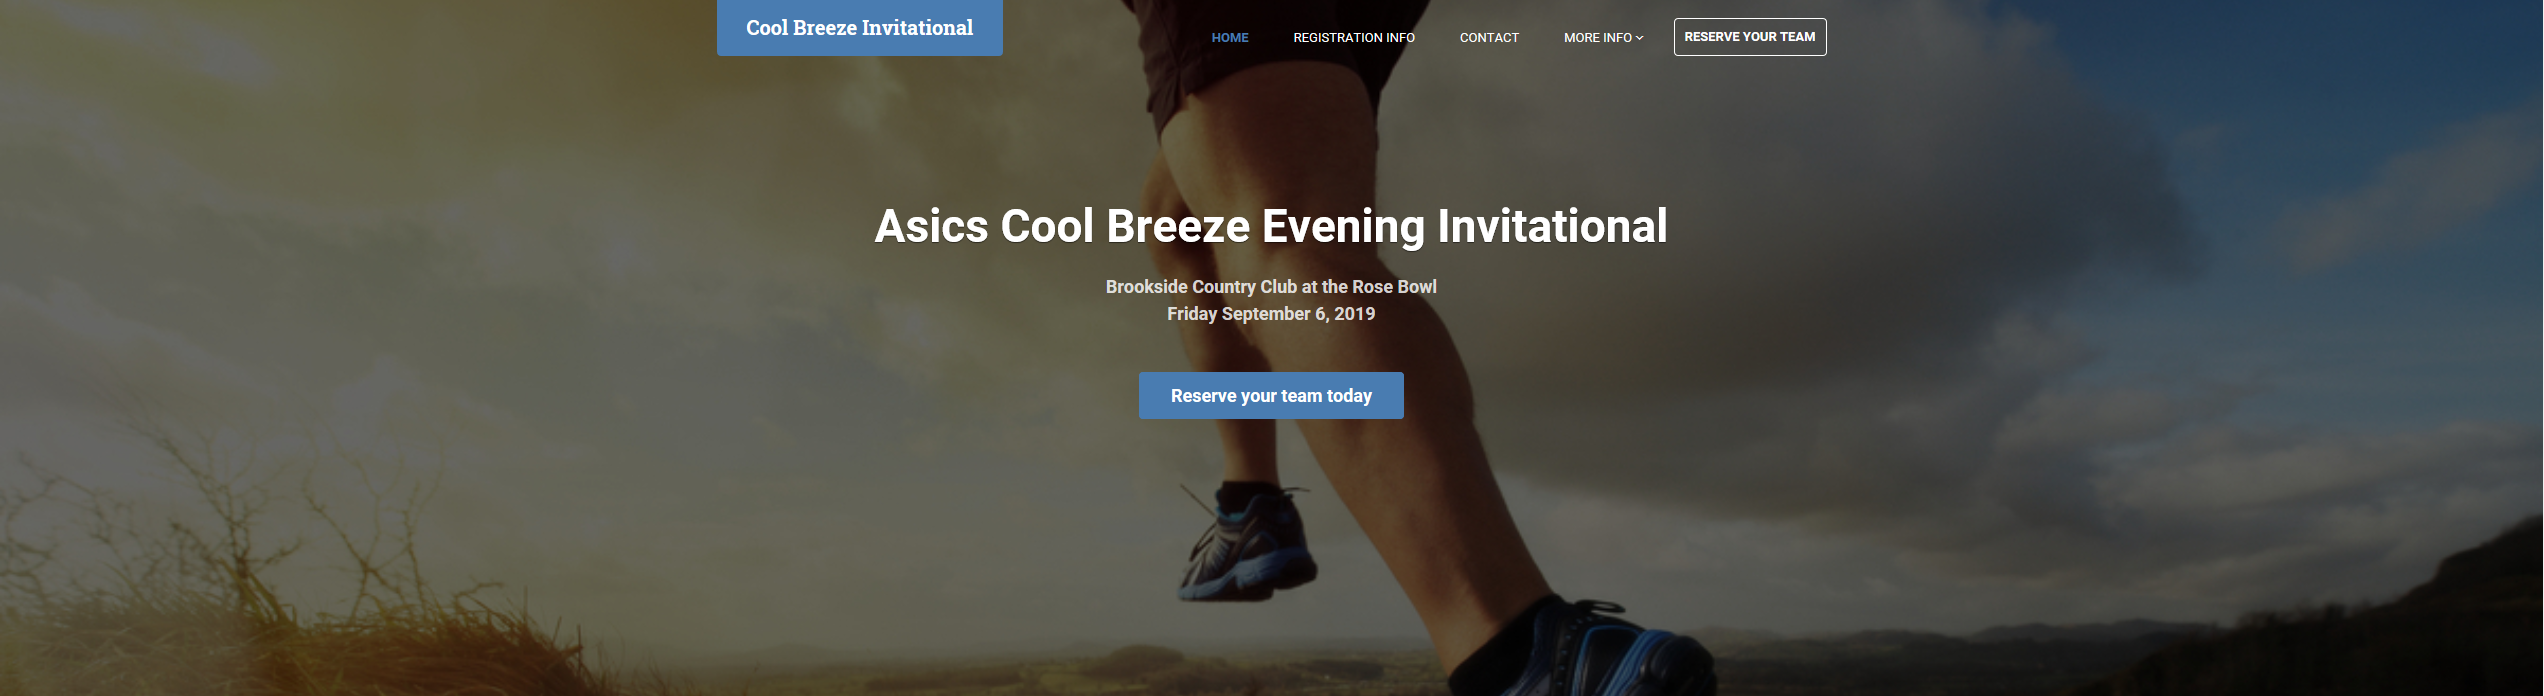 2019-09-06 - Page Banner - Cool Breeze Invitational